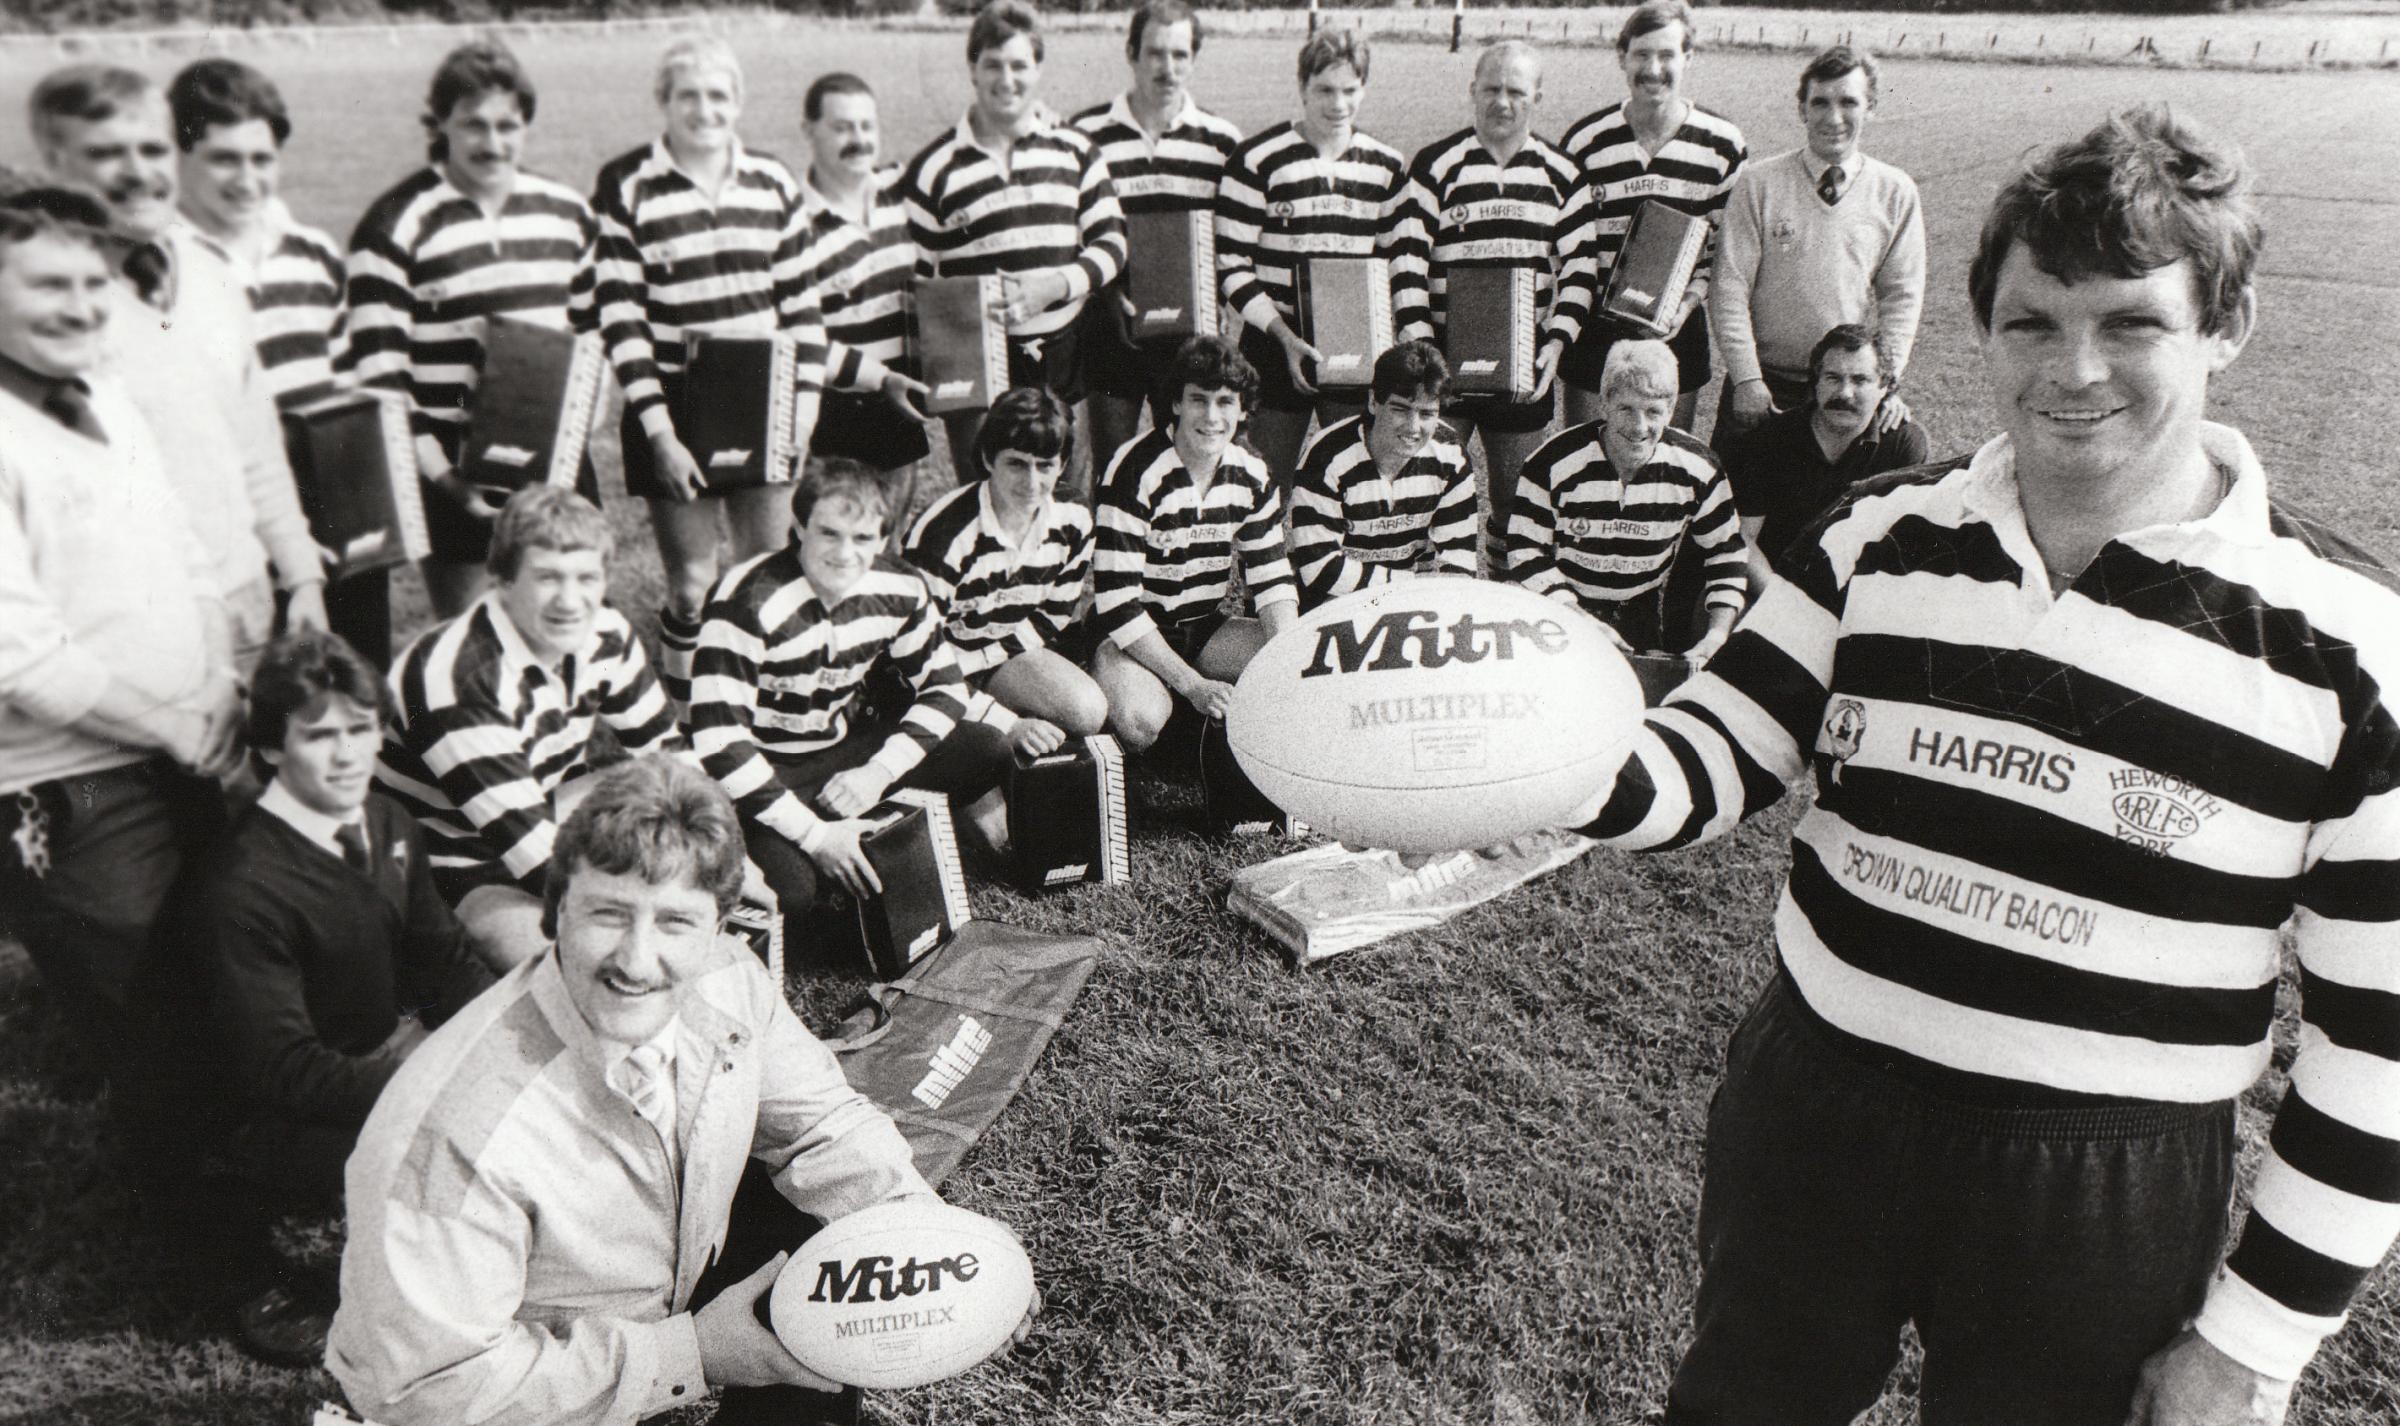 September 1987: Peter Deakin (kneeling, front left) of Open Rugby Magazine, presents Heworth ARLC coach Colin Forsyth (right) and his team with items of sportswear for winning the Mitre sponsored Open Rugby Team of the Season award the previous season